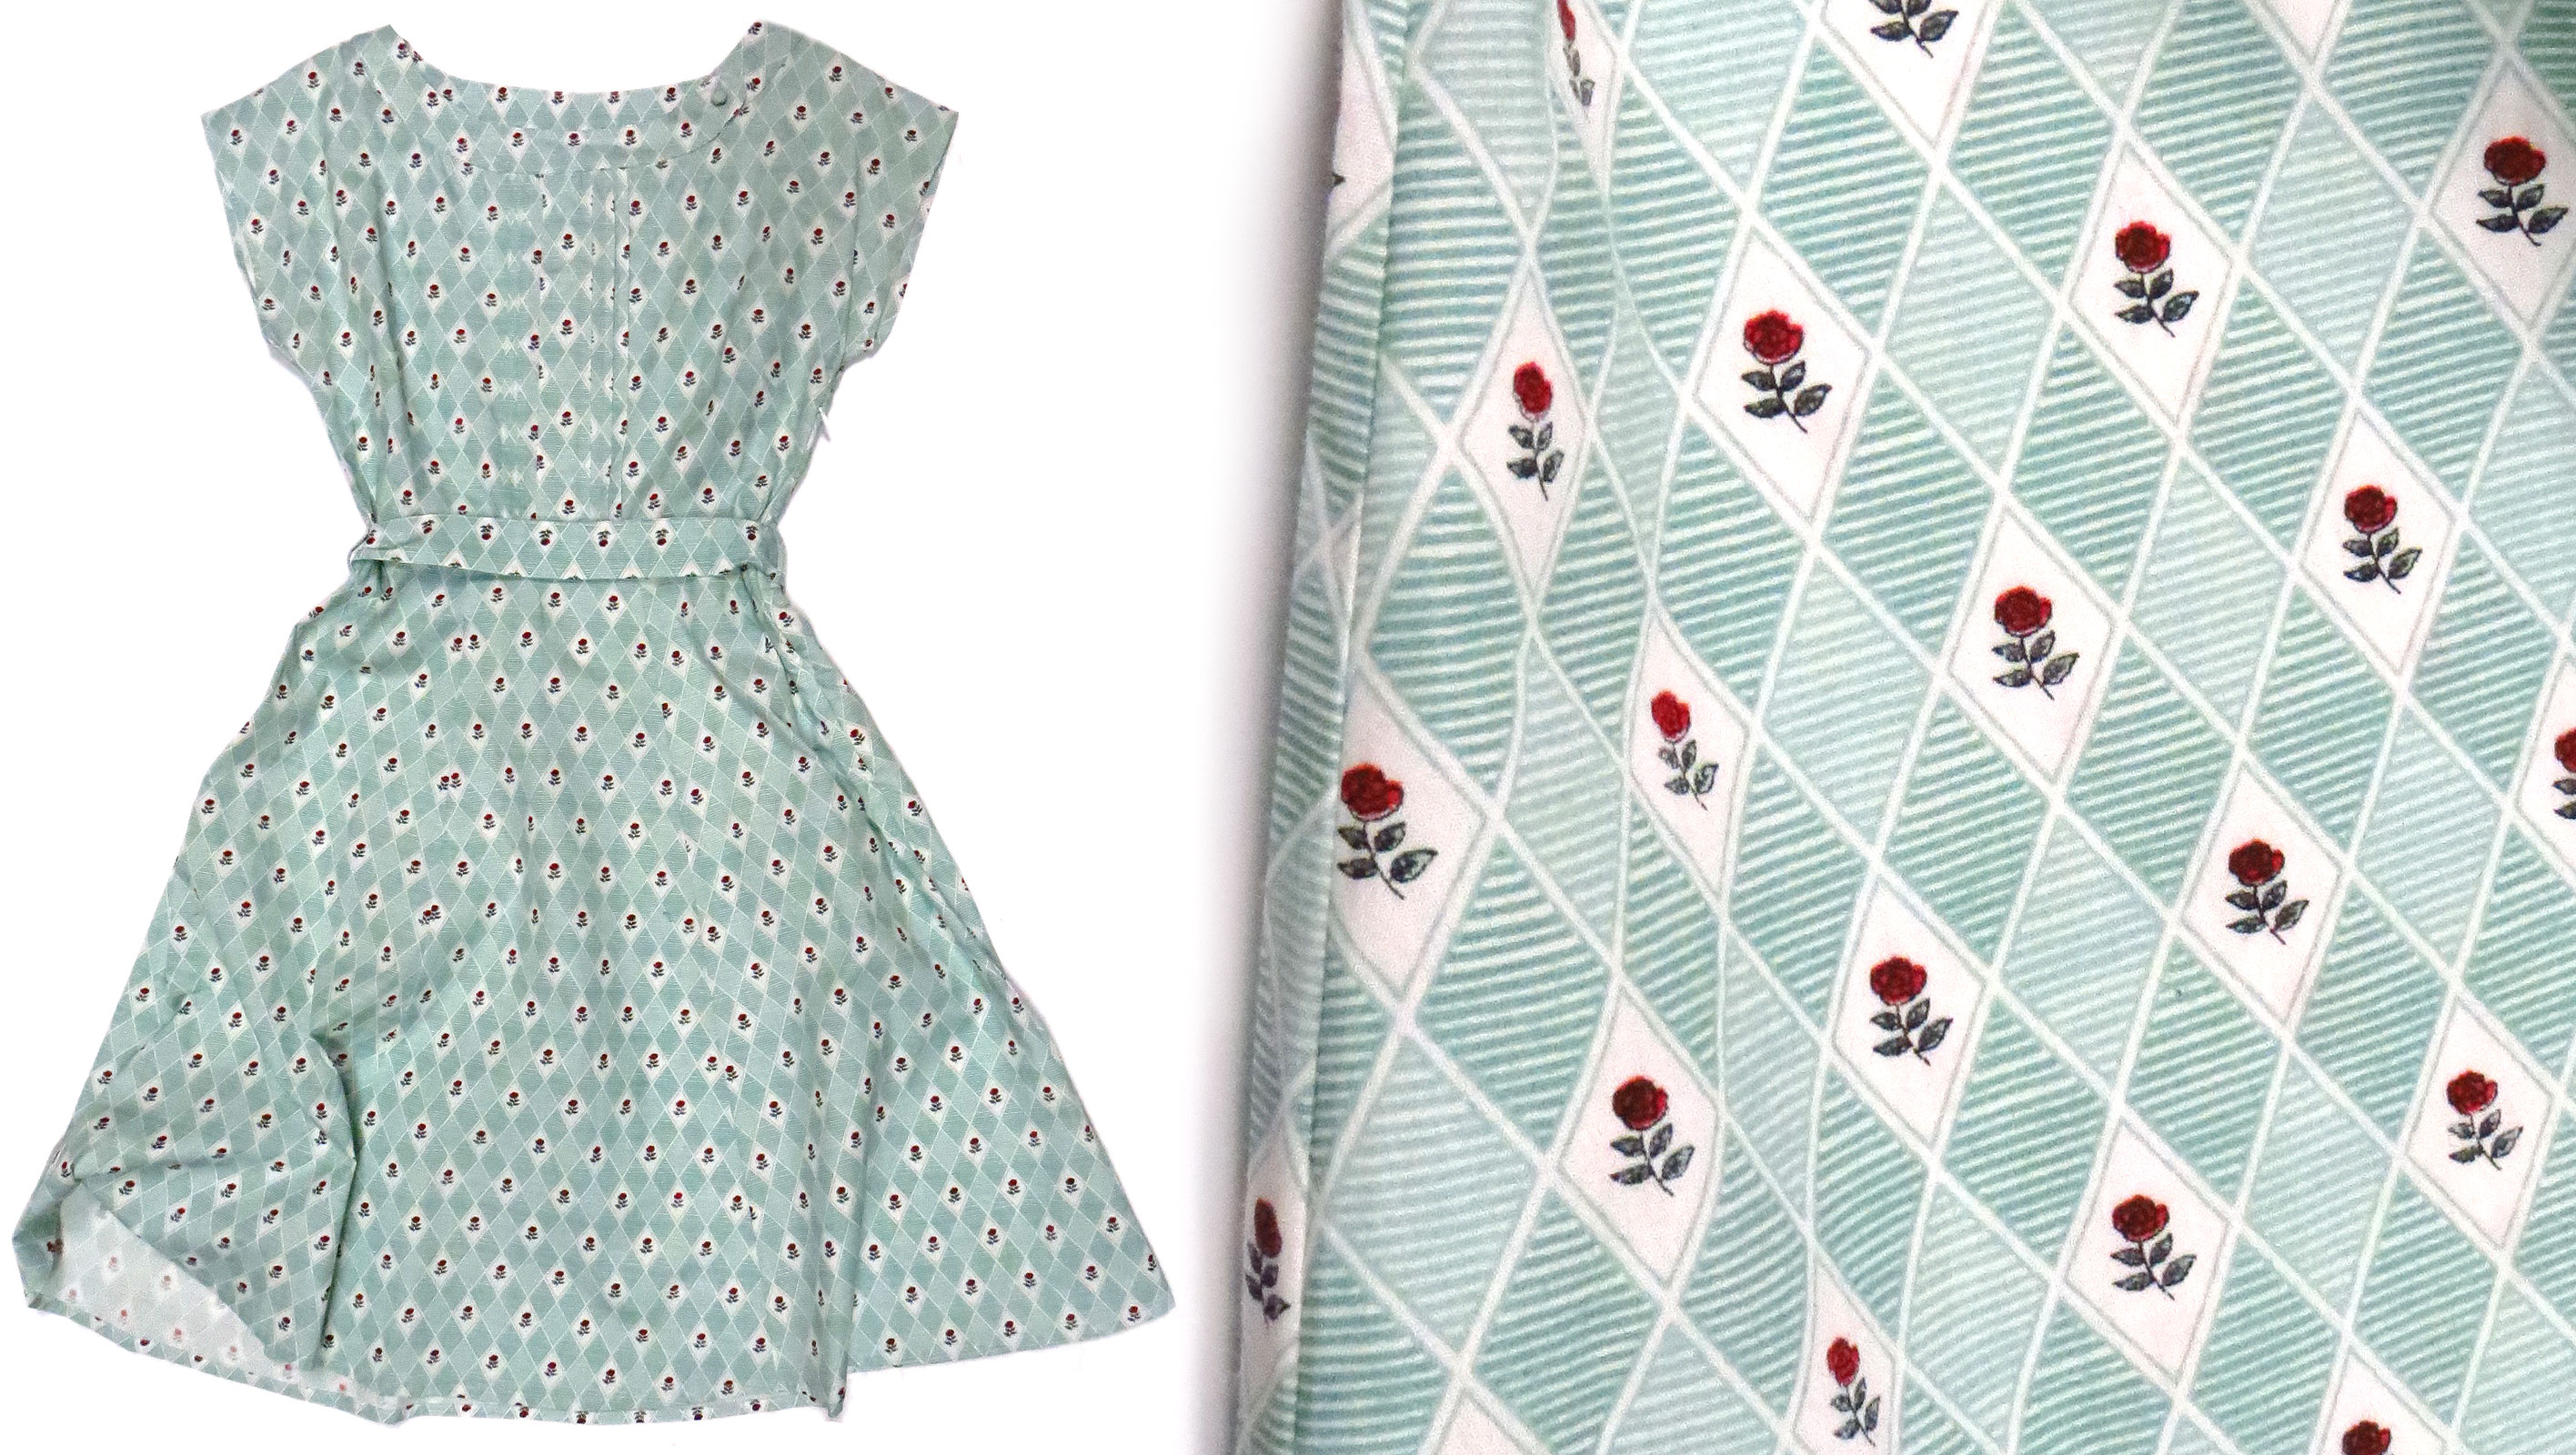 Rosebud Dress